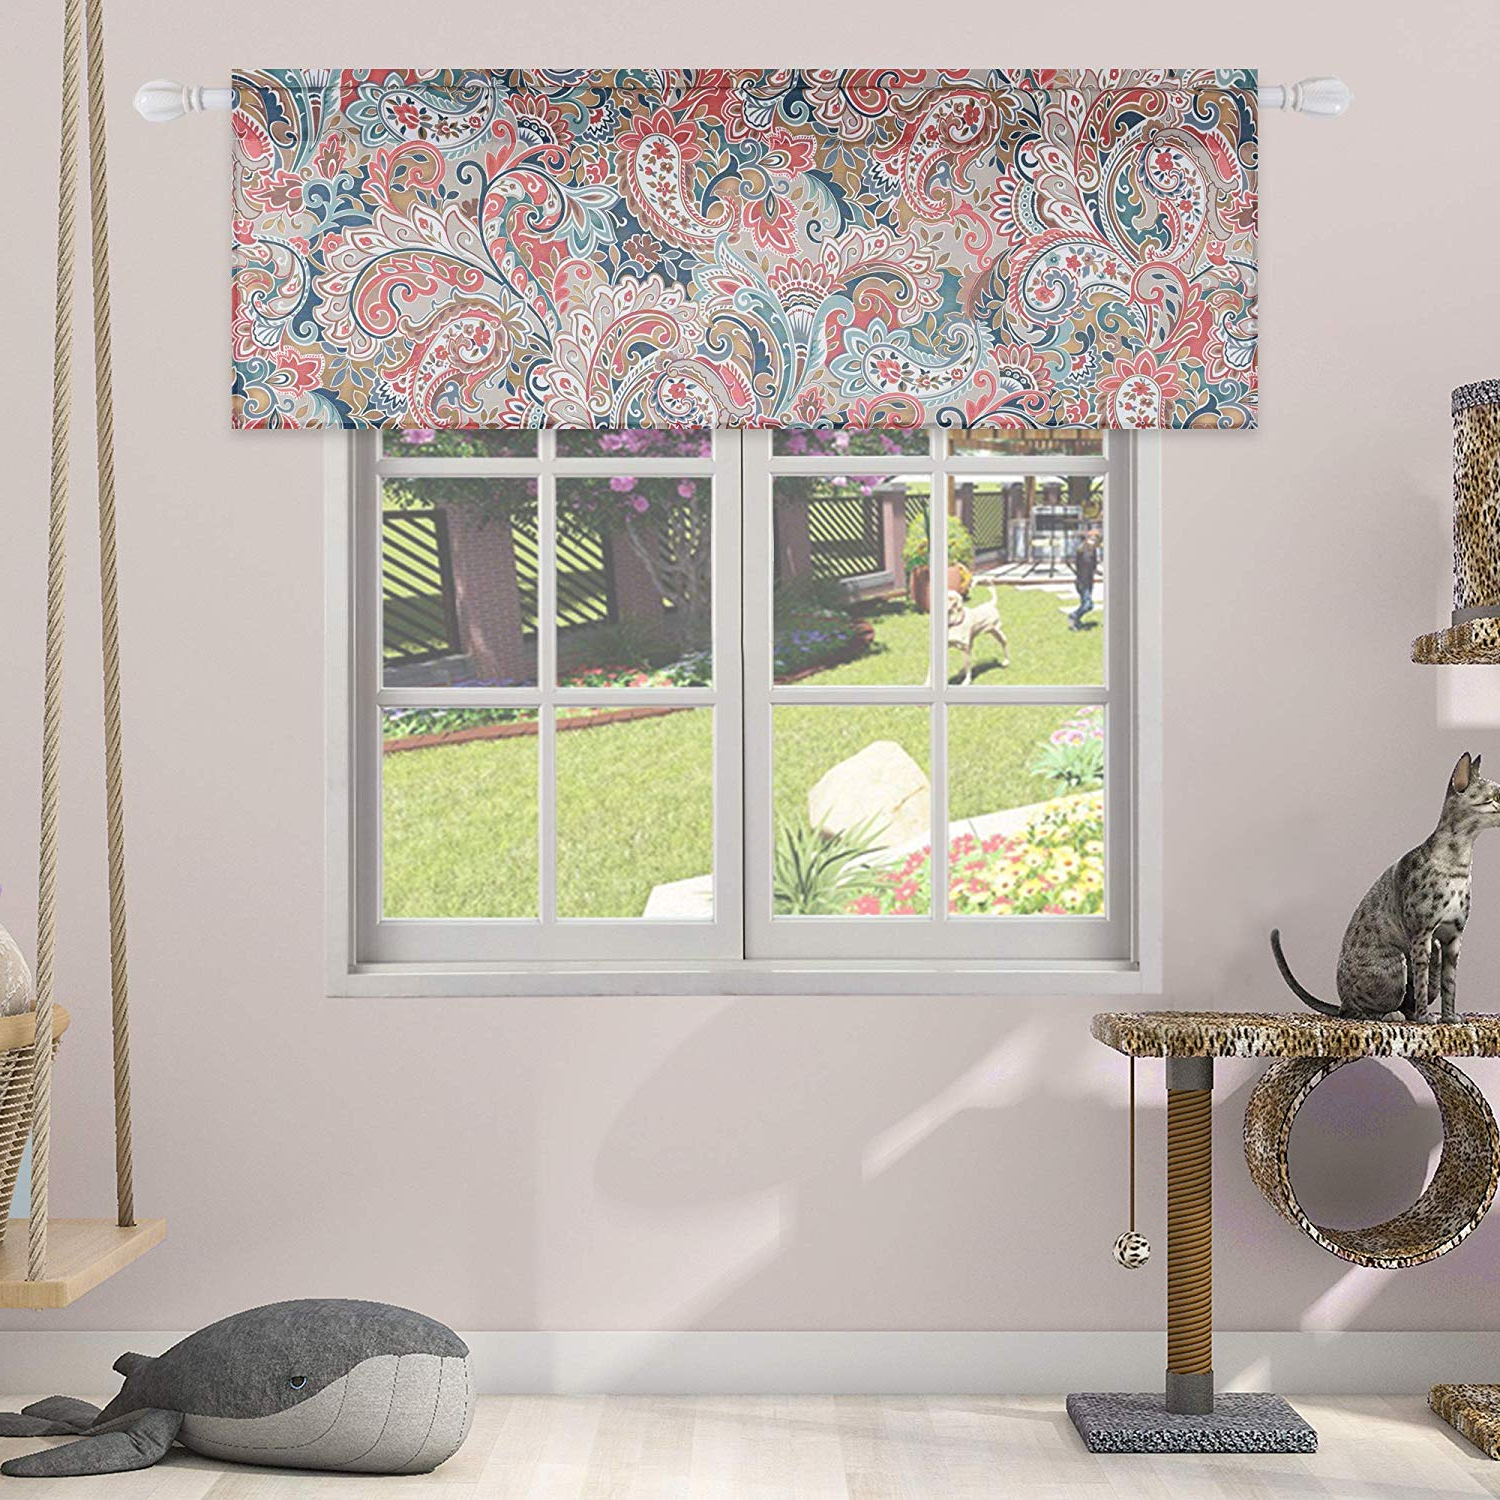 Floral Pattern Window Valances For 2020 Amazon: Huto Floral Pattern Window Curtain Valances For (Gallery 5 of 20)